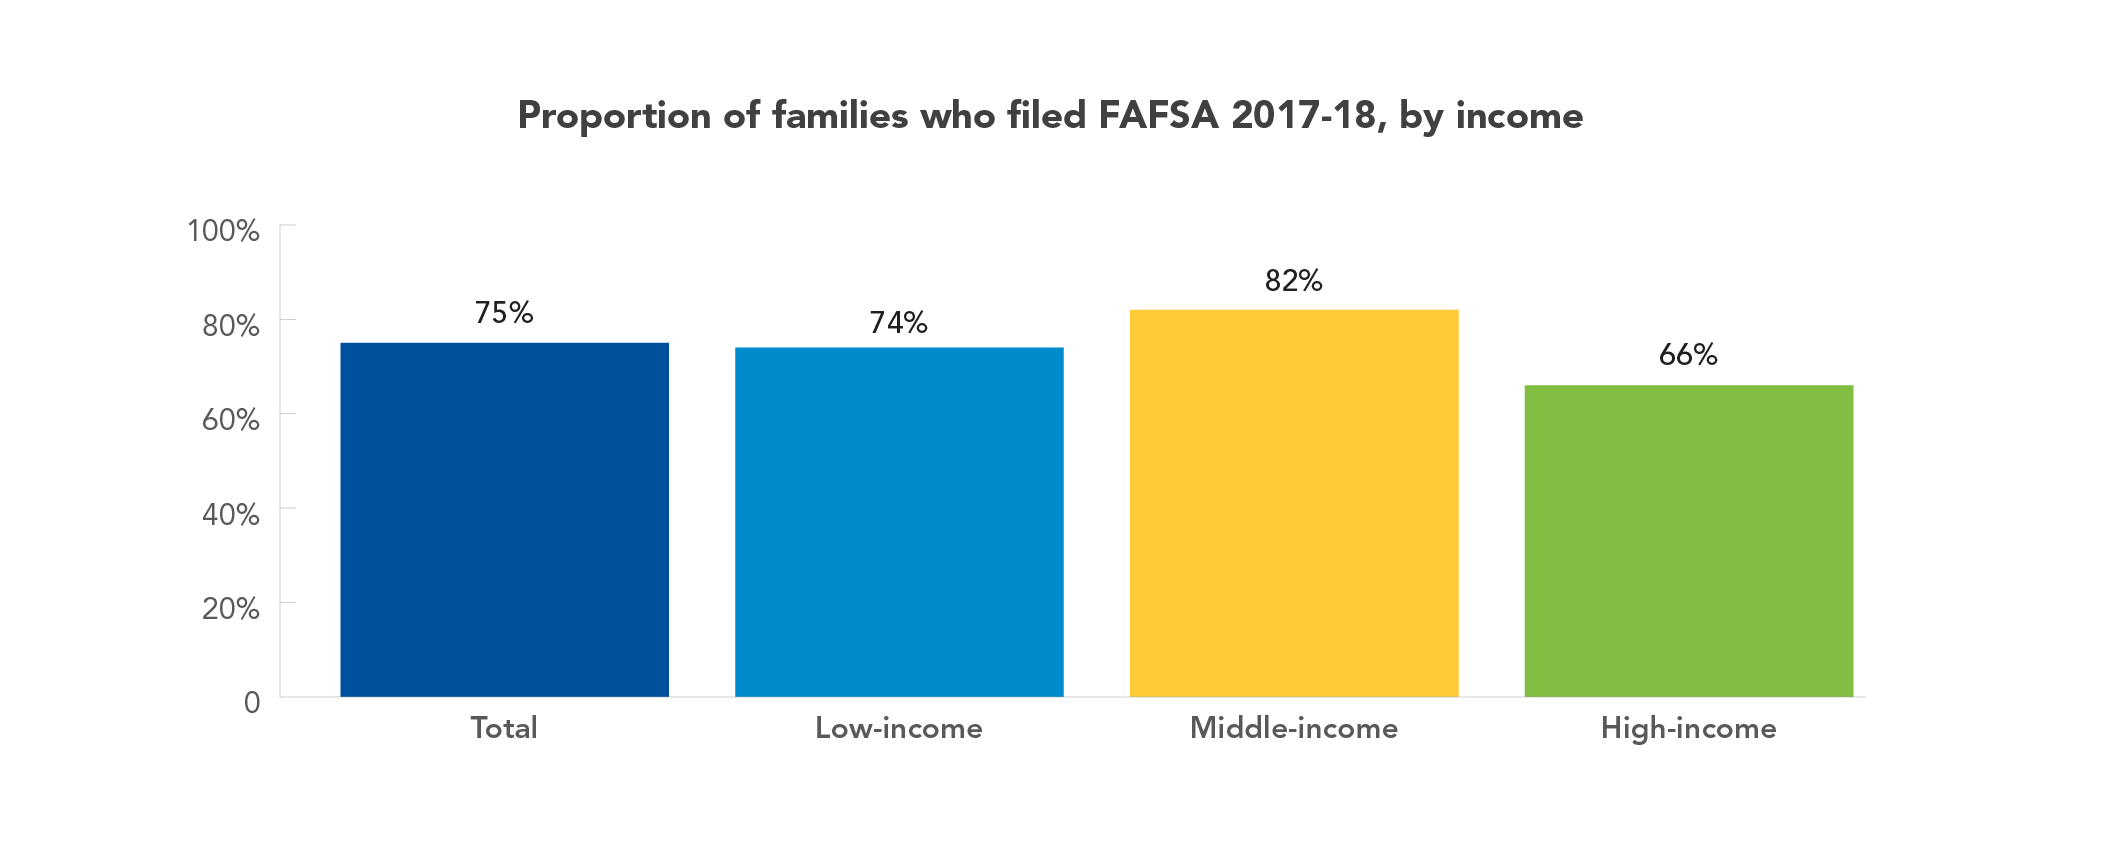 Proportion of families who filed FAFSA 2017-18, by income